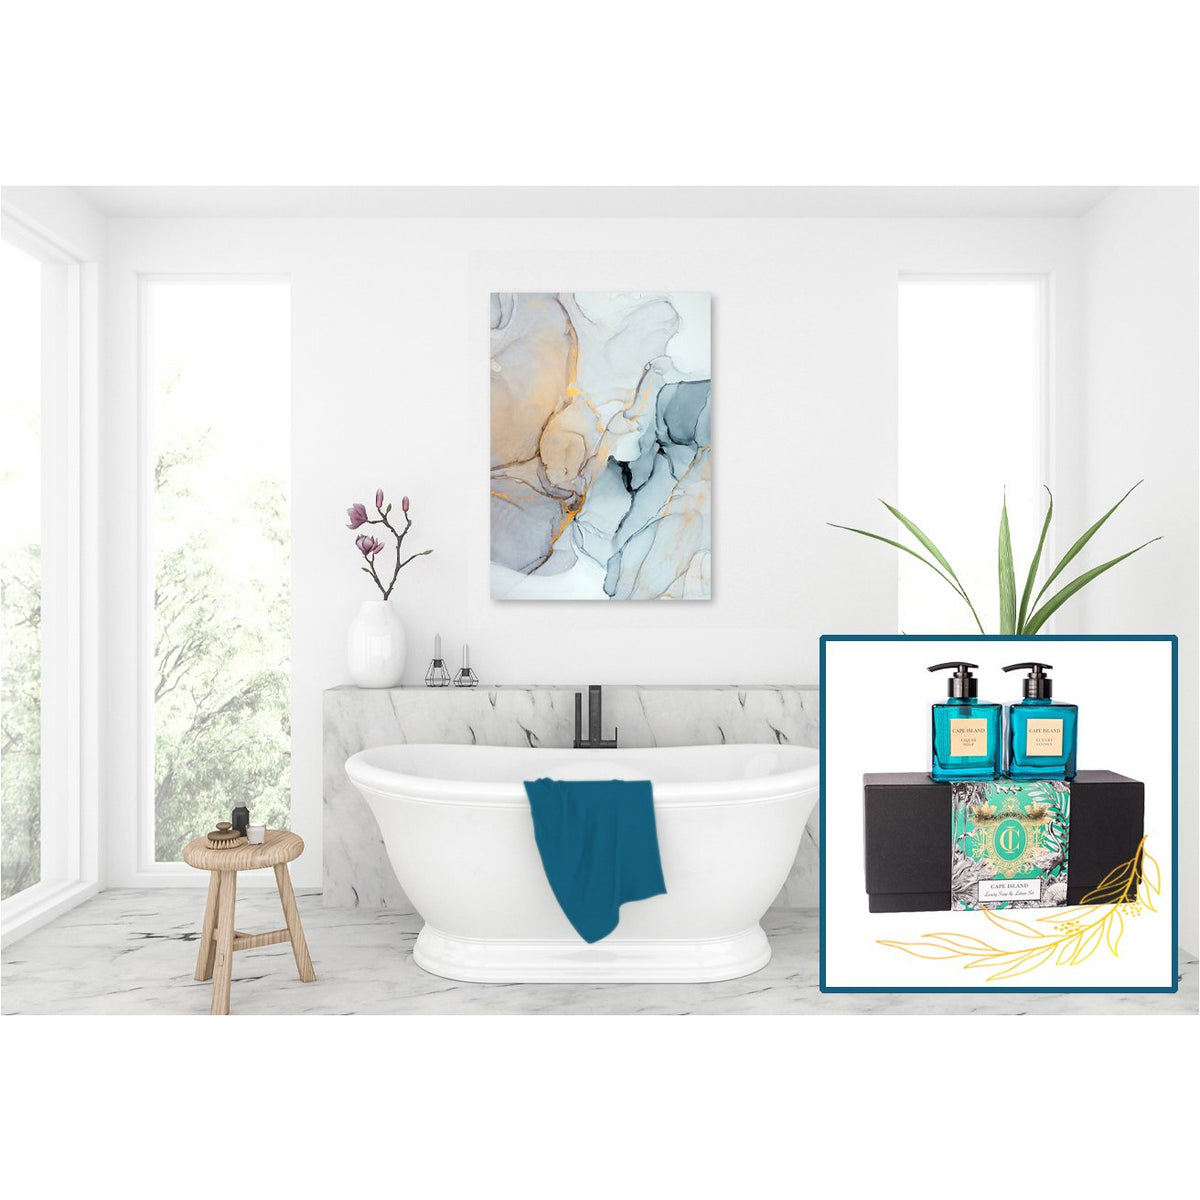 BATHROOM BLISS ABSTRACT CANVAS & FRAGRANCE SET - CLIFTON BEACH RANGE freeshipping - Beautiful Spaces Store